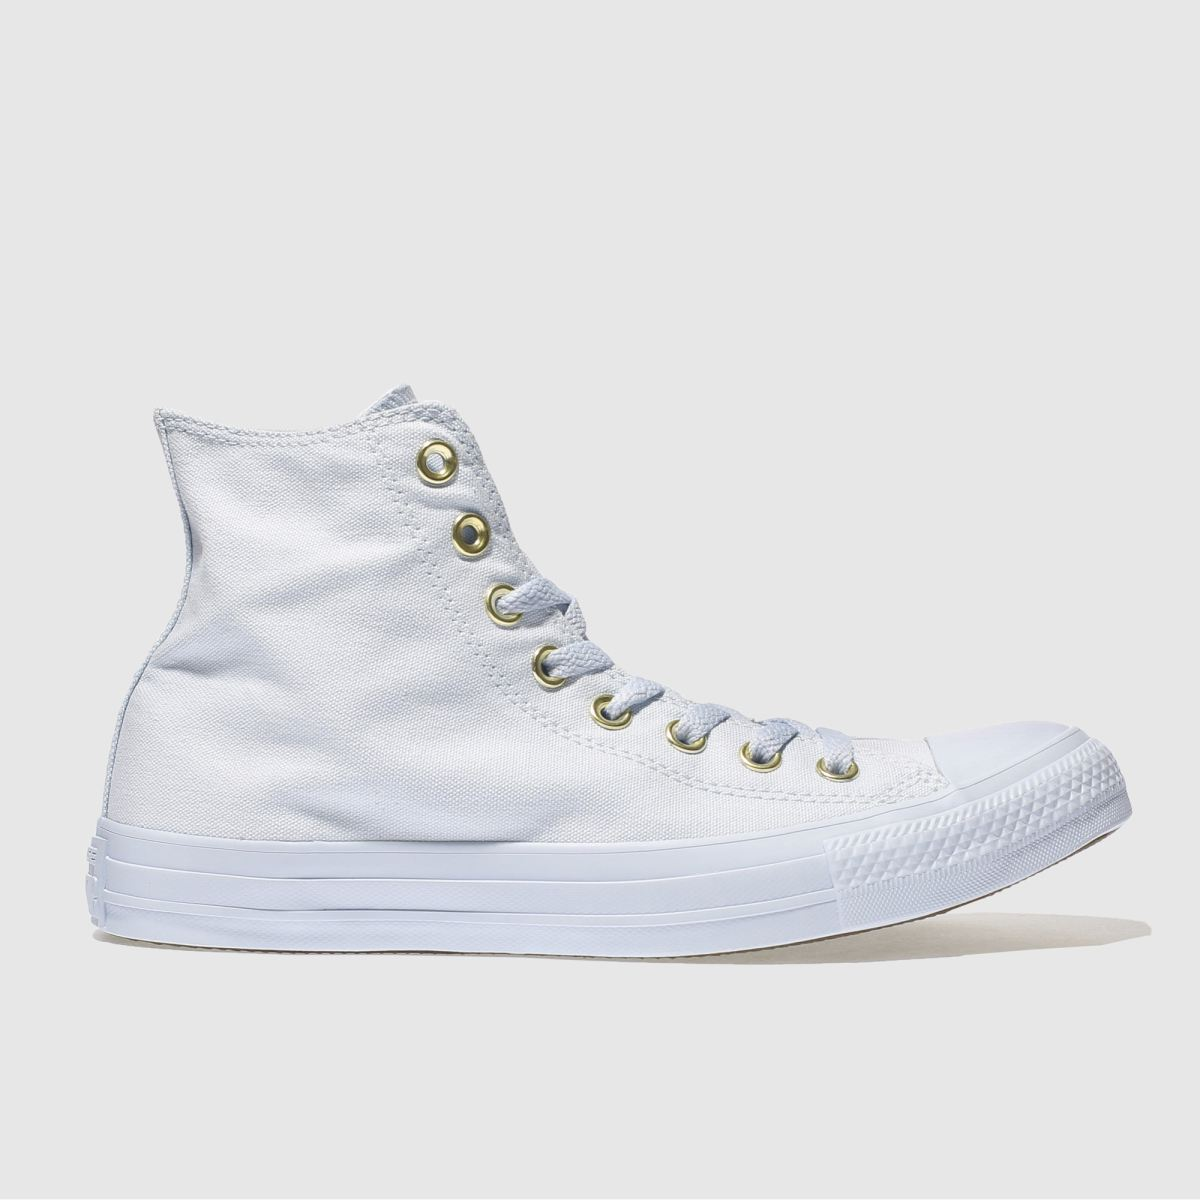 Converse Pale Blue All Star Mono Glam Hi Trainers